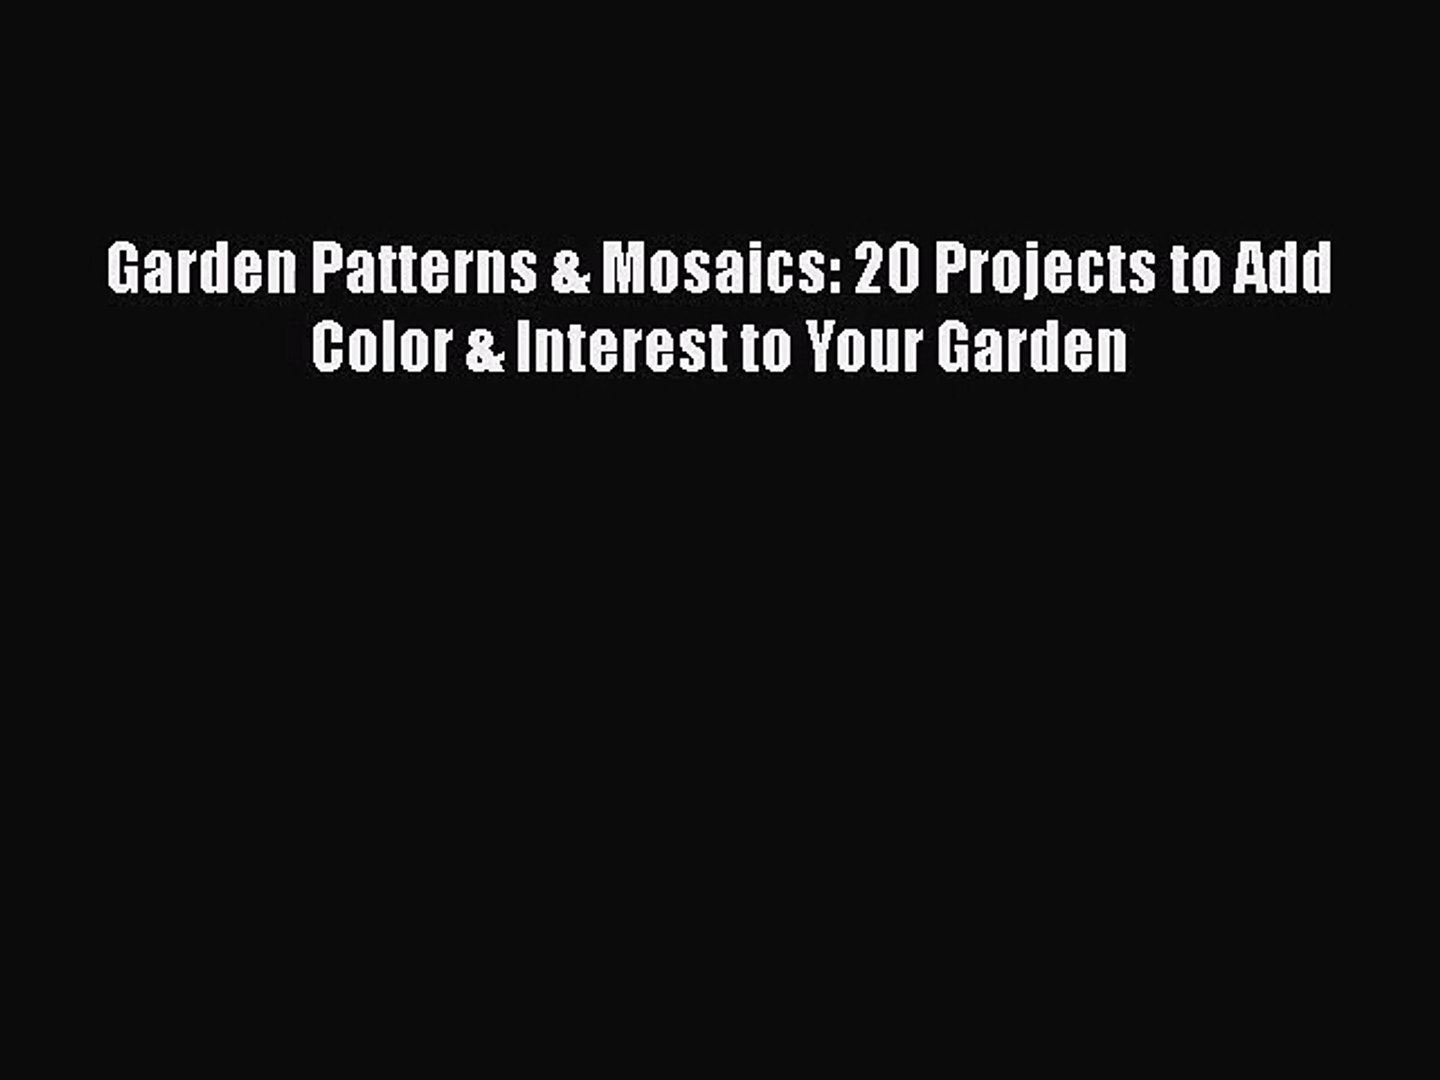 Garden Patterns & Mosaics: 20 Projects to Add Color & Interest to Your Garden Read Online PD